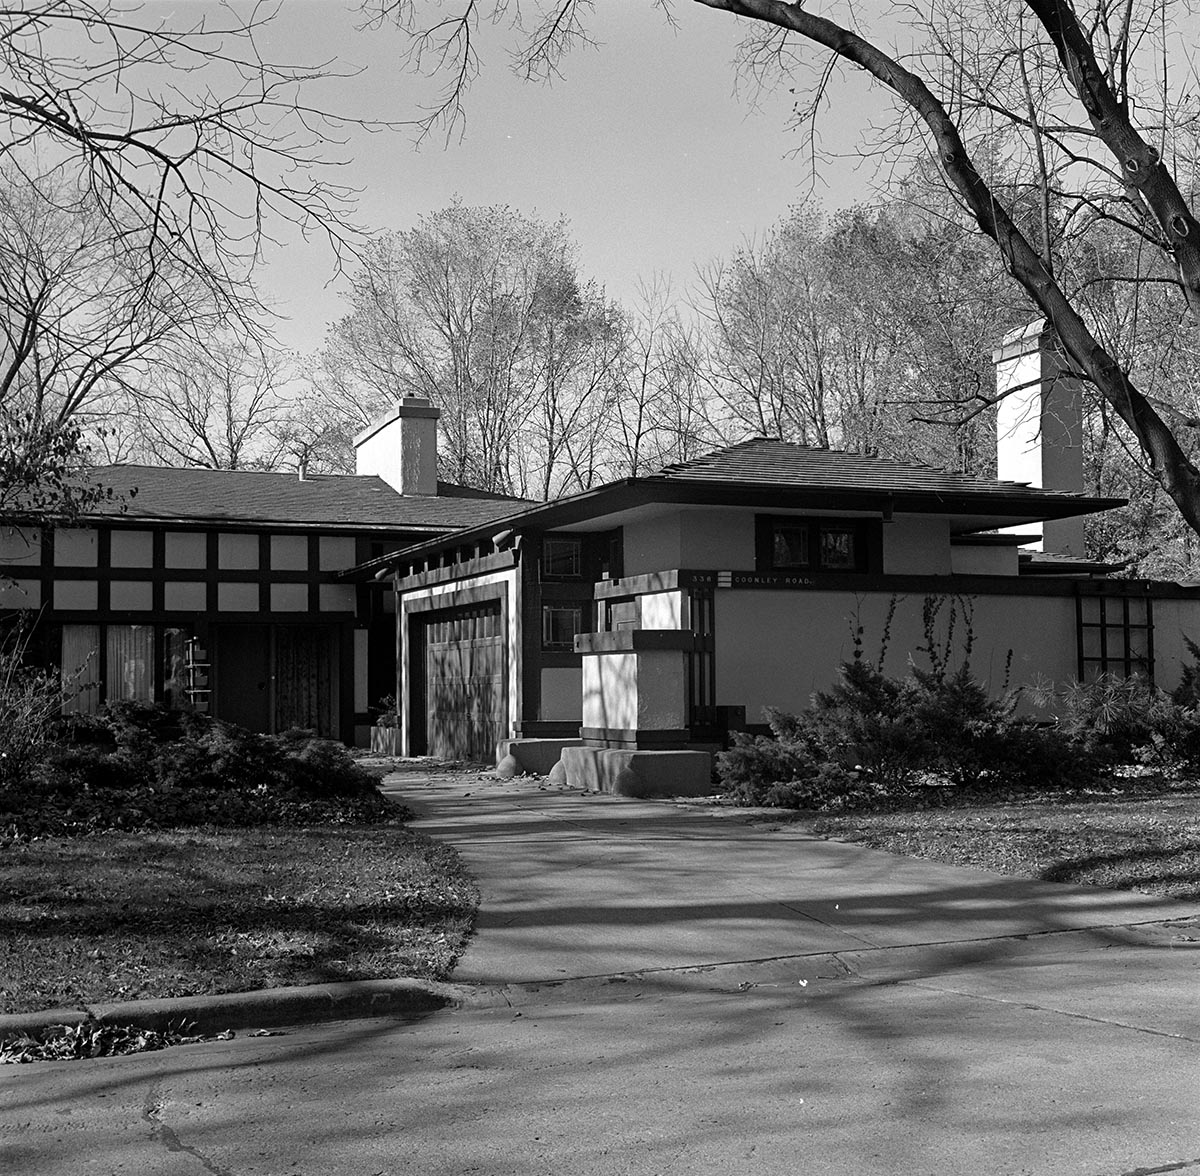 Avery Coonley Residence. Ruth and Rick Meghiddo, 1971. All Rights Reserved.